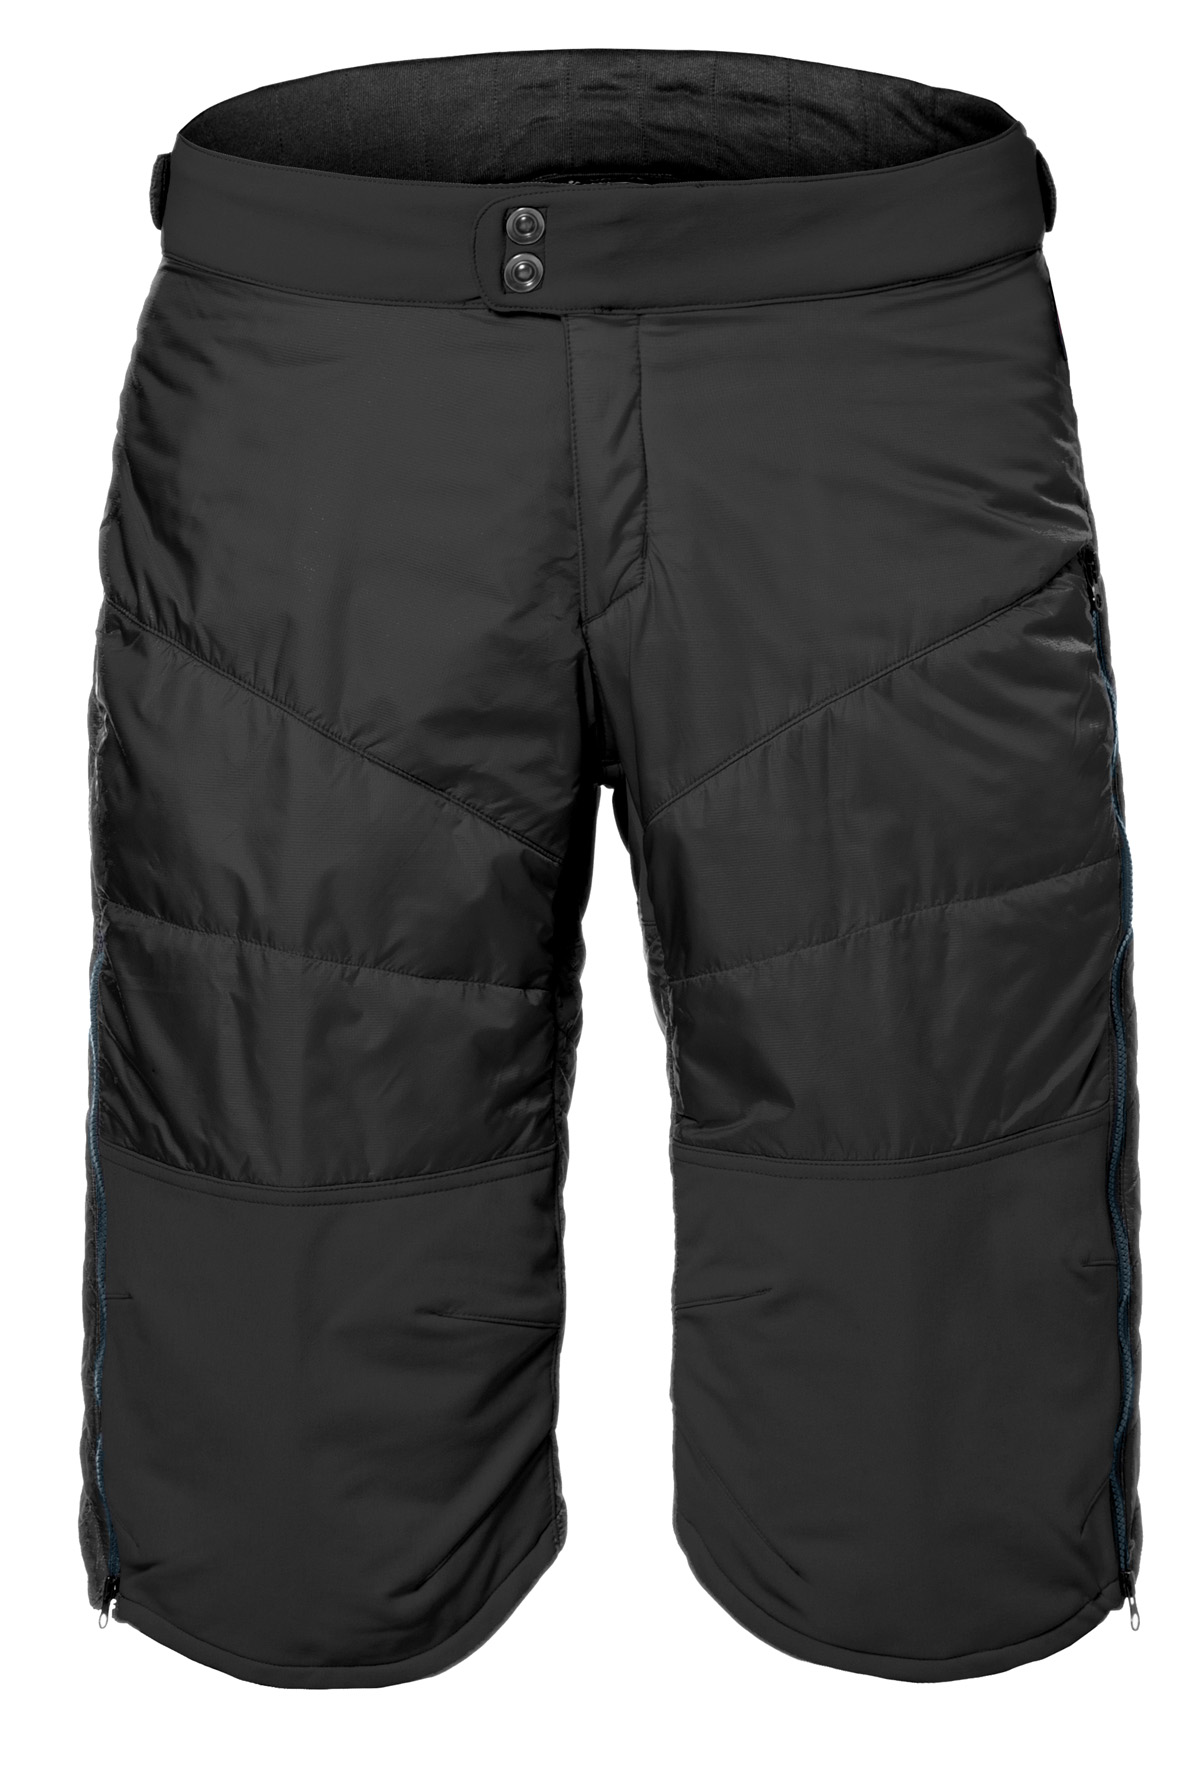 VAUDE Men´s Minaki Shorts black Größe XL - schneider-sports